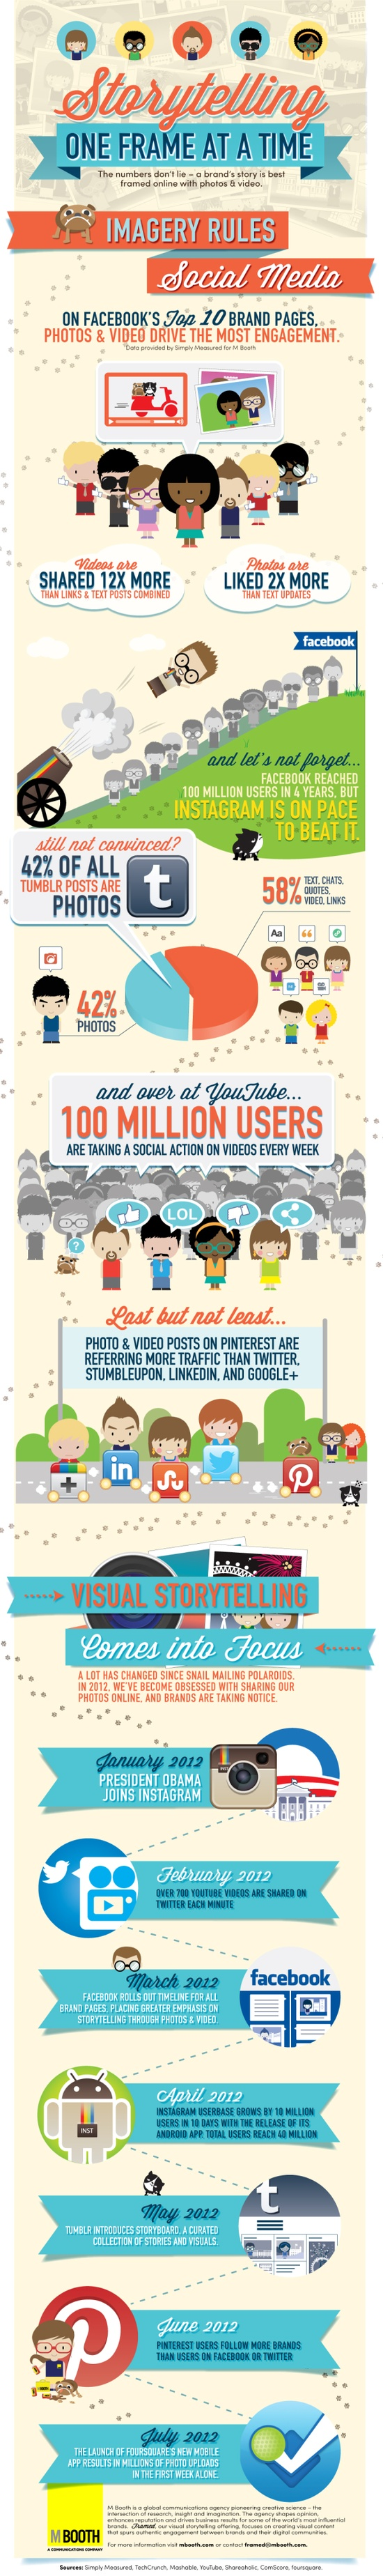 visual, storytelling, social media, hubspot